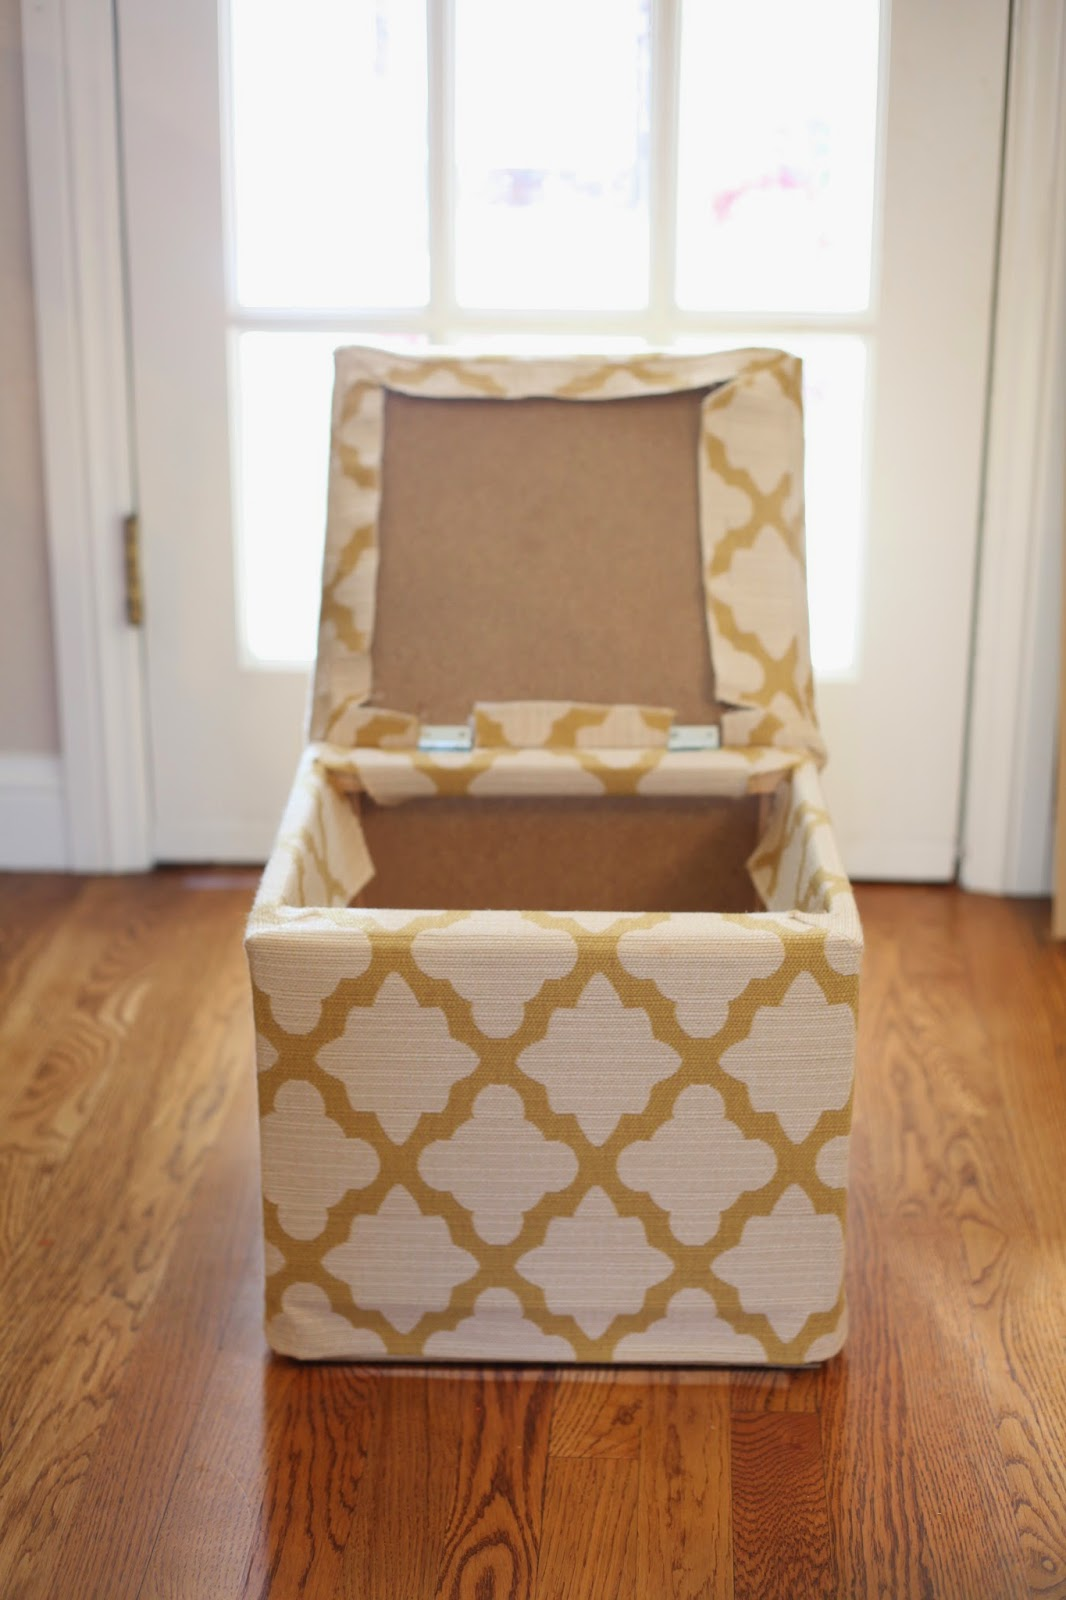 From Ikea Footstool to Custom Made Storage Ottoman